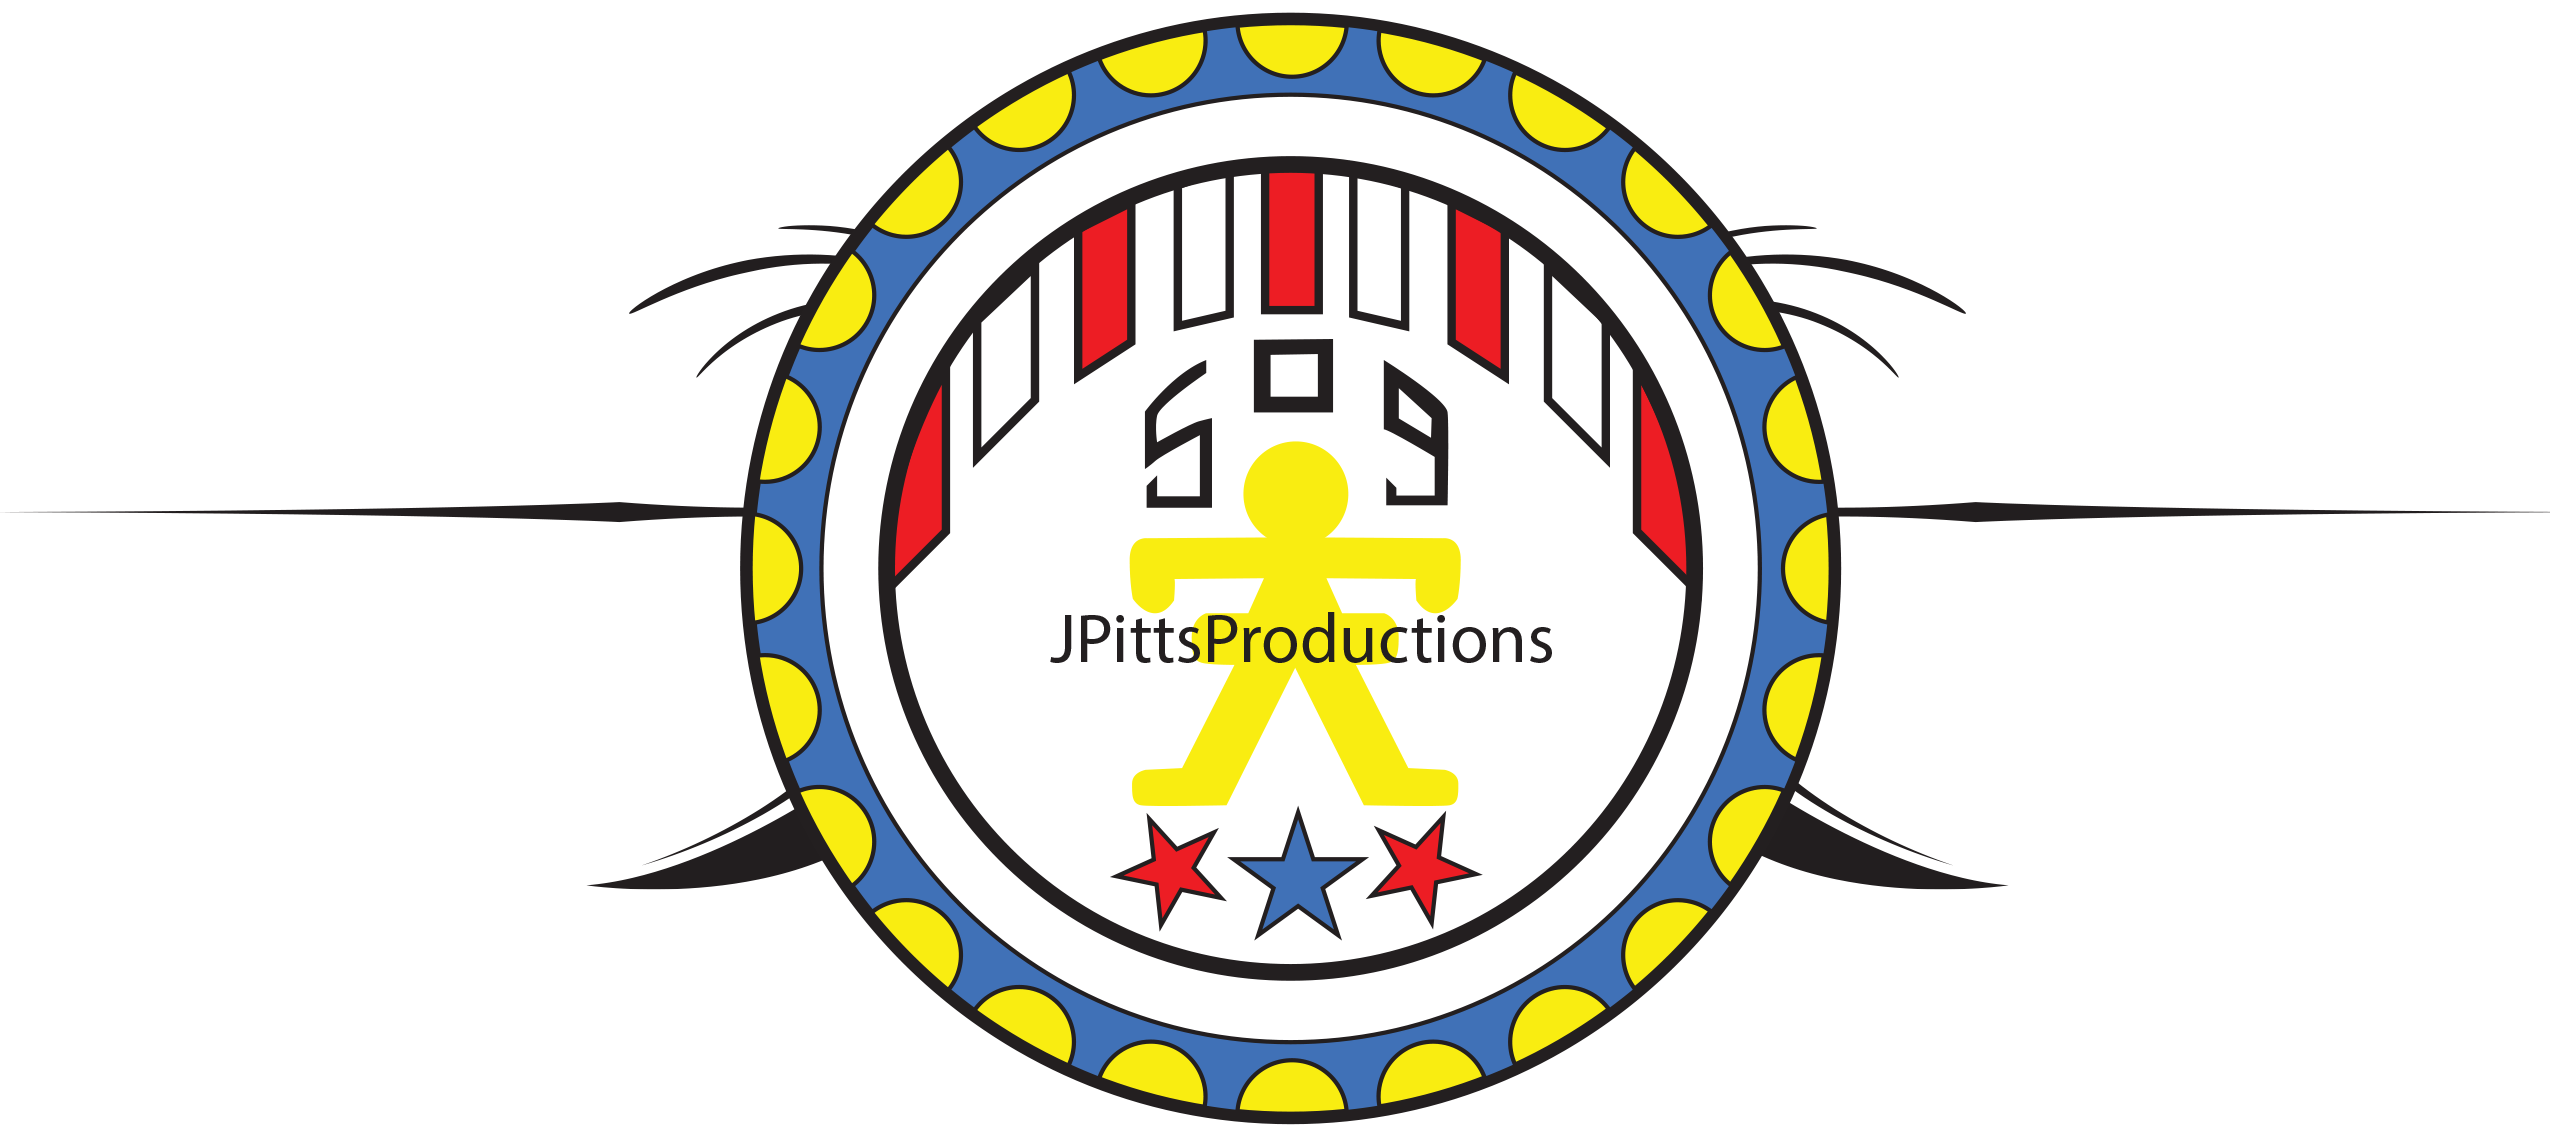 509th airborne unit patch clipart clipart royalty free stock 1/509th Airborne Infantry – JPittsProductions © 2019 clipart royalty free stock